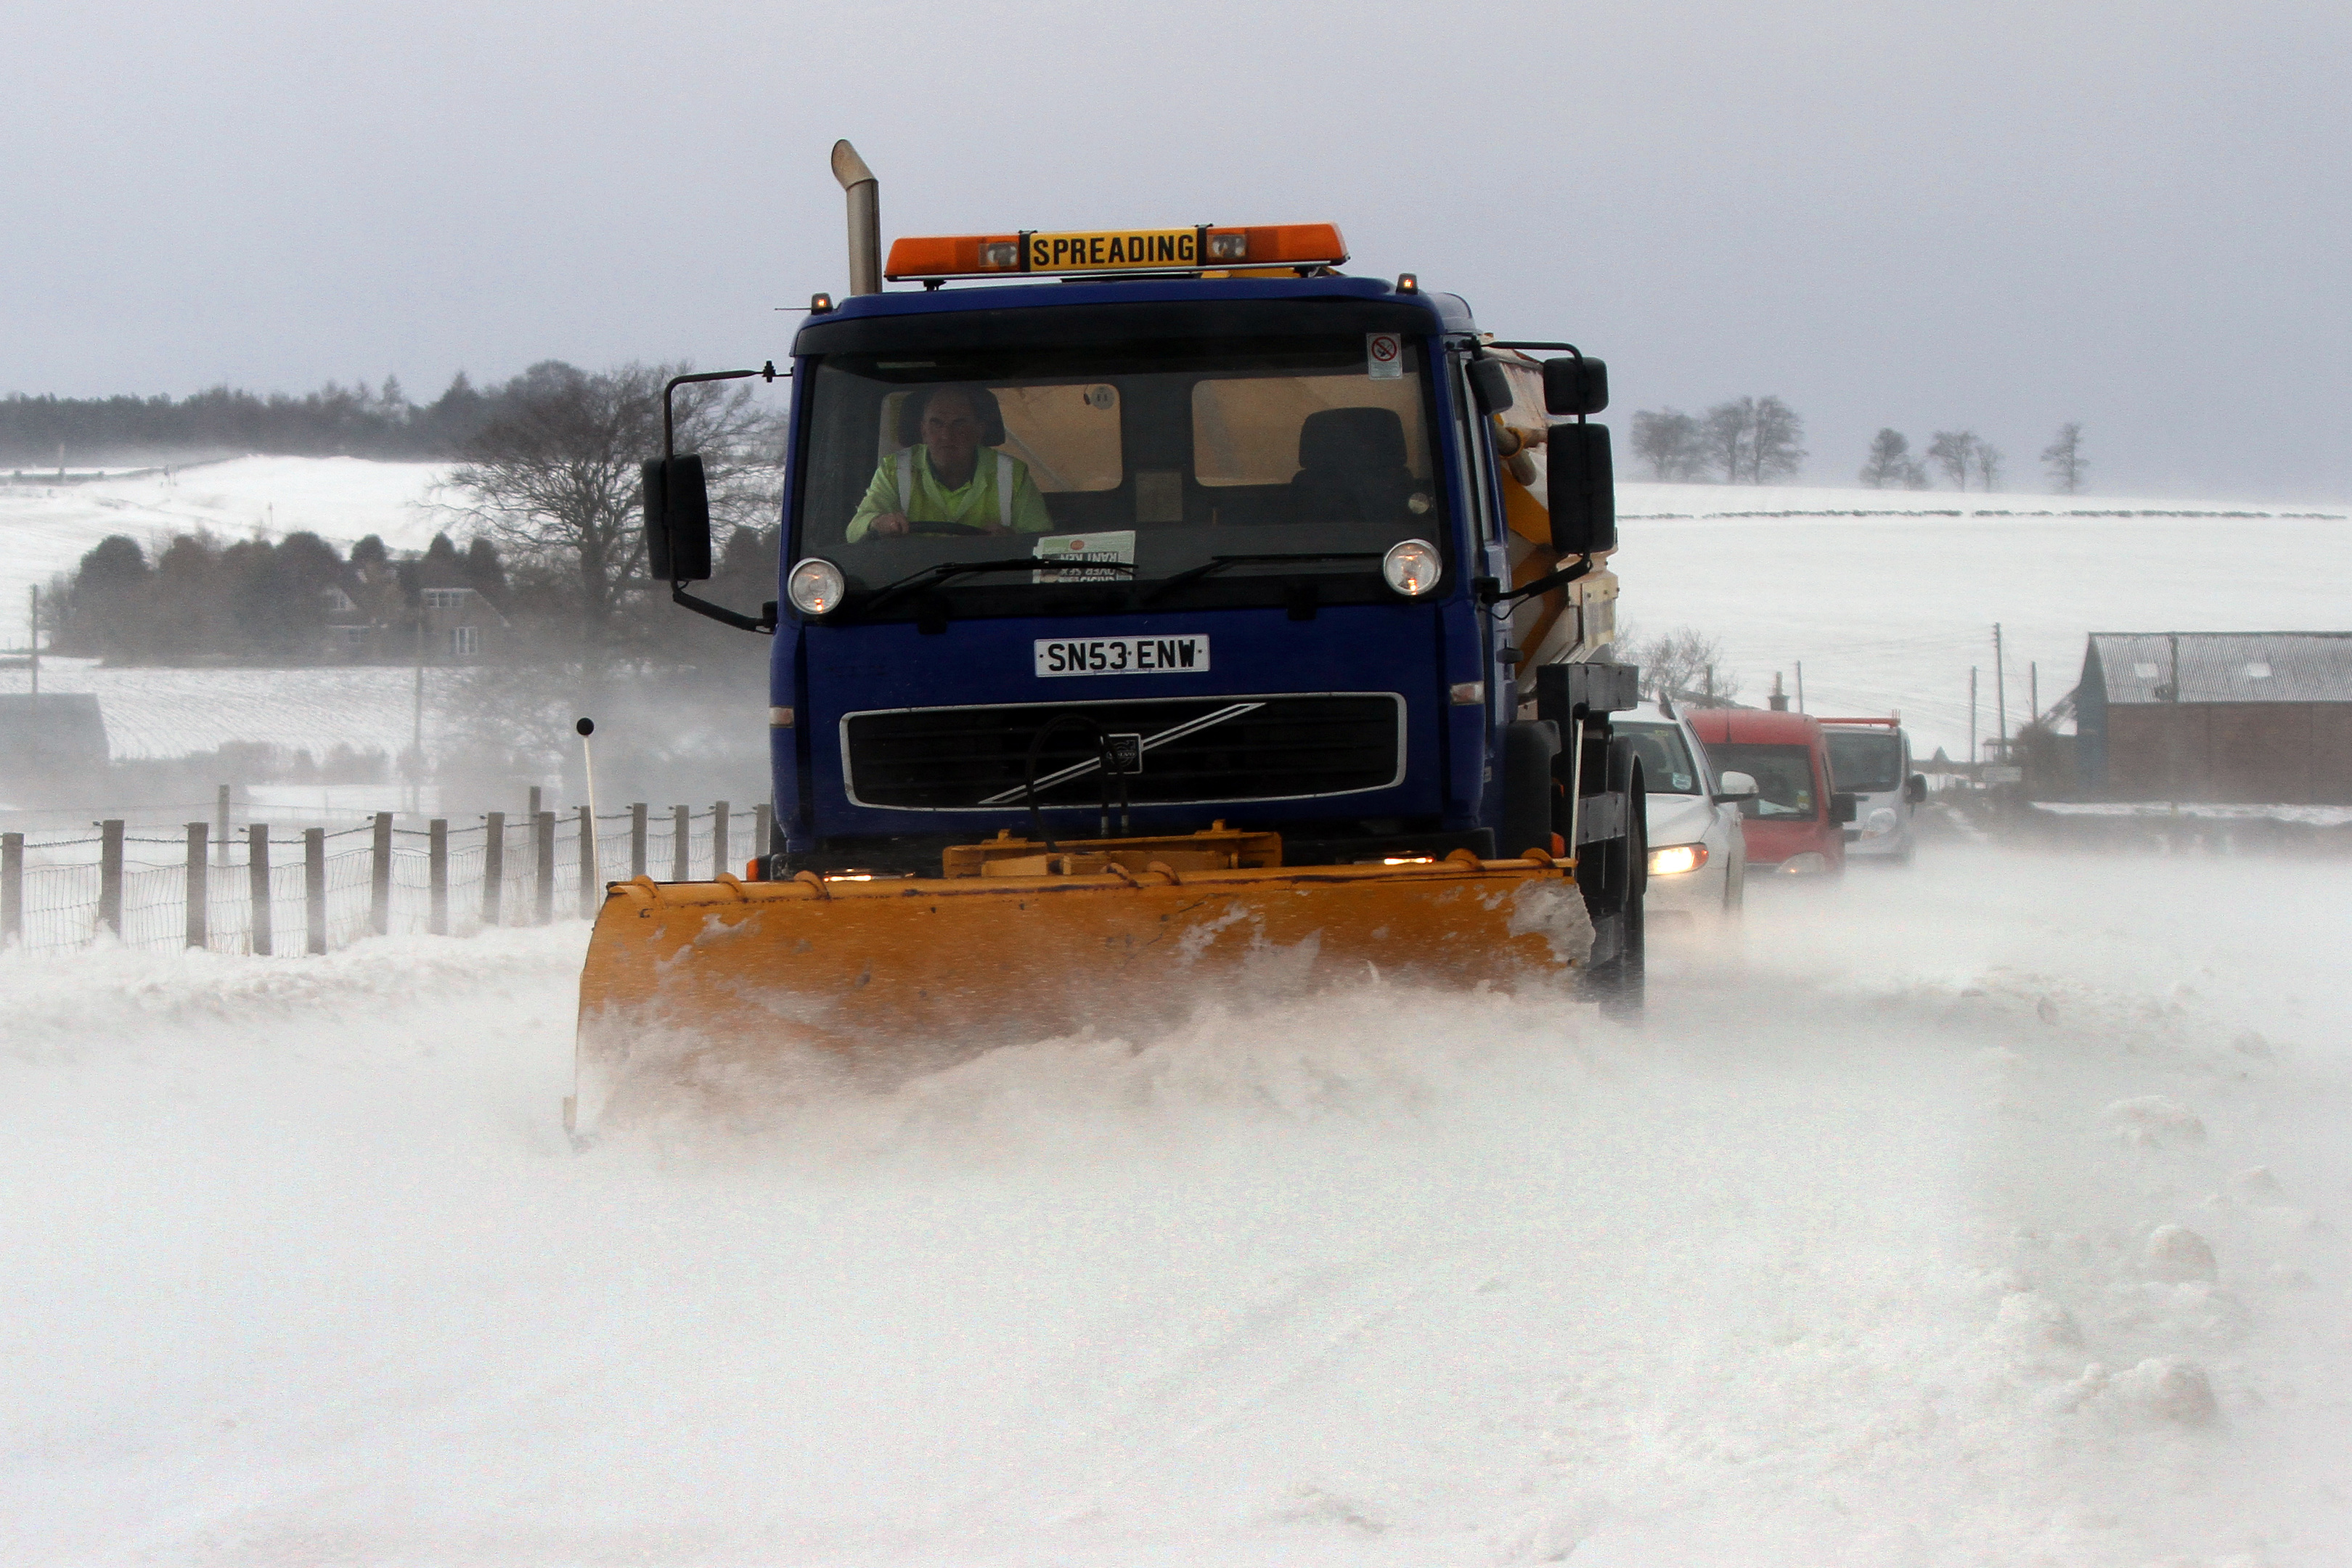 A snow plough trying trying to clear a path through snow north of Dundee in 2013.